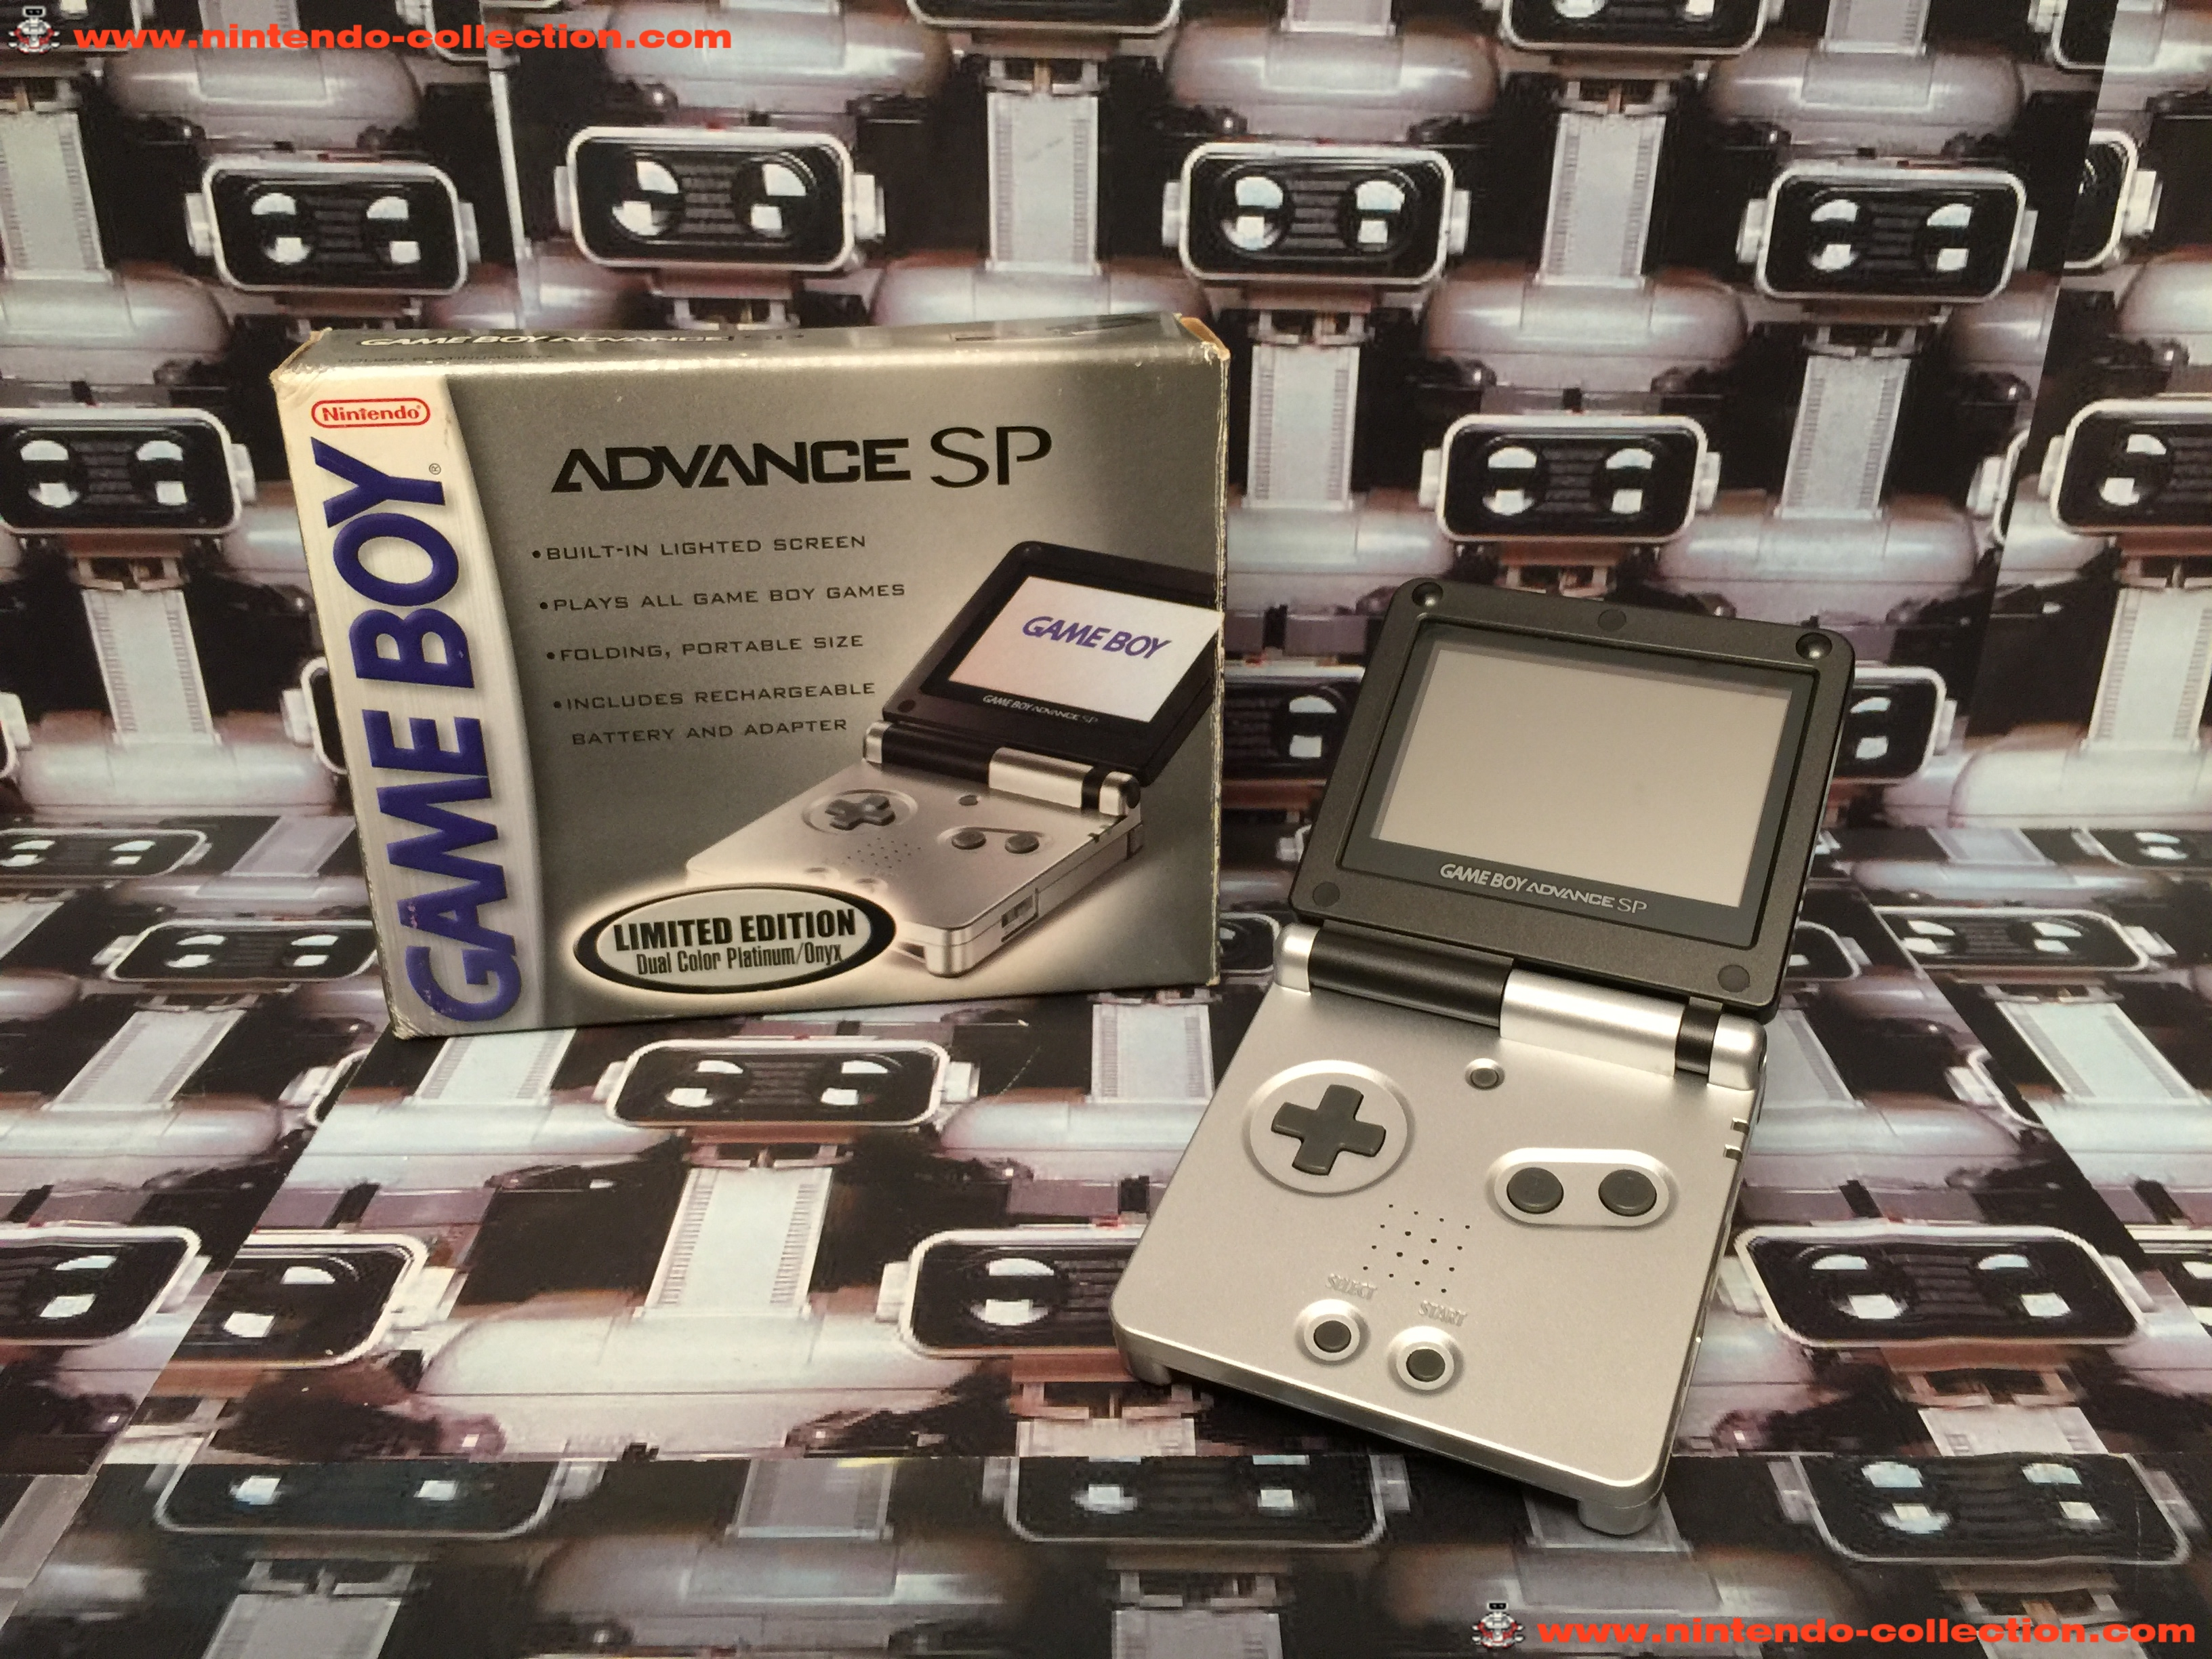 www.nintendo-collection.com - Gameboy Advance GBA SP Black Onyx edition US - 02